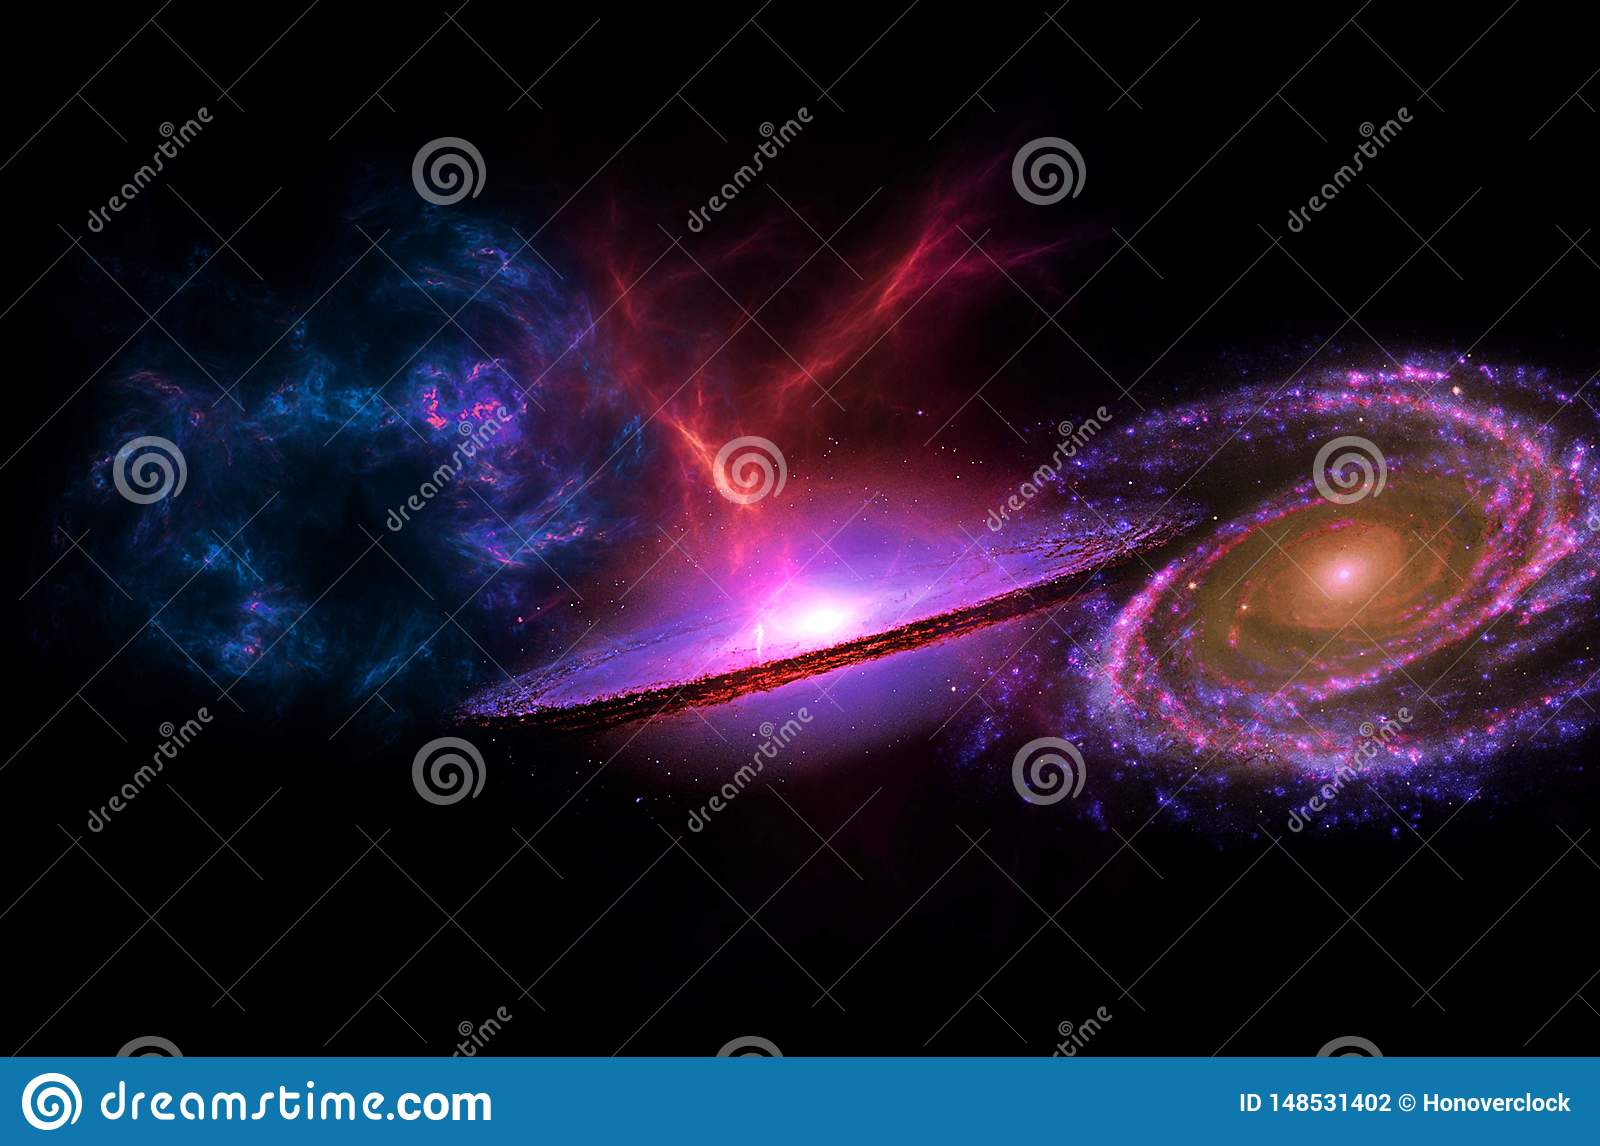 planets galaxy science fiction wallpaper beauty deep space billions universe cosmic art background vertical image 148531402